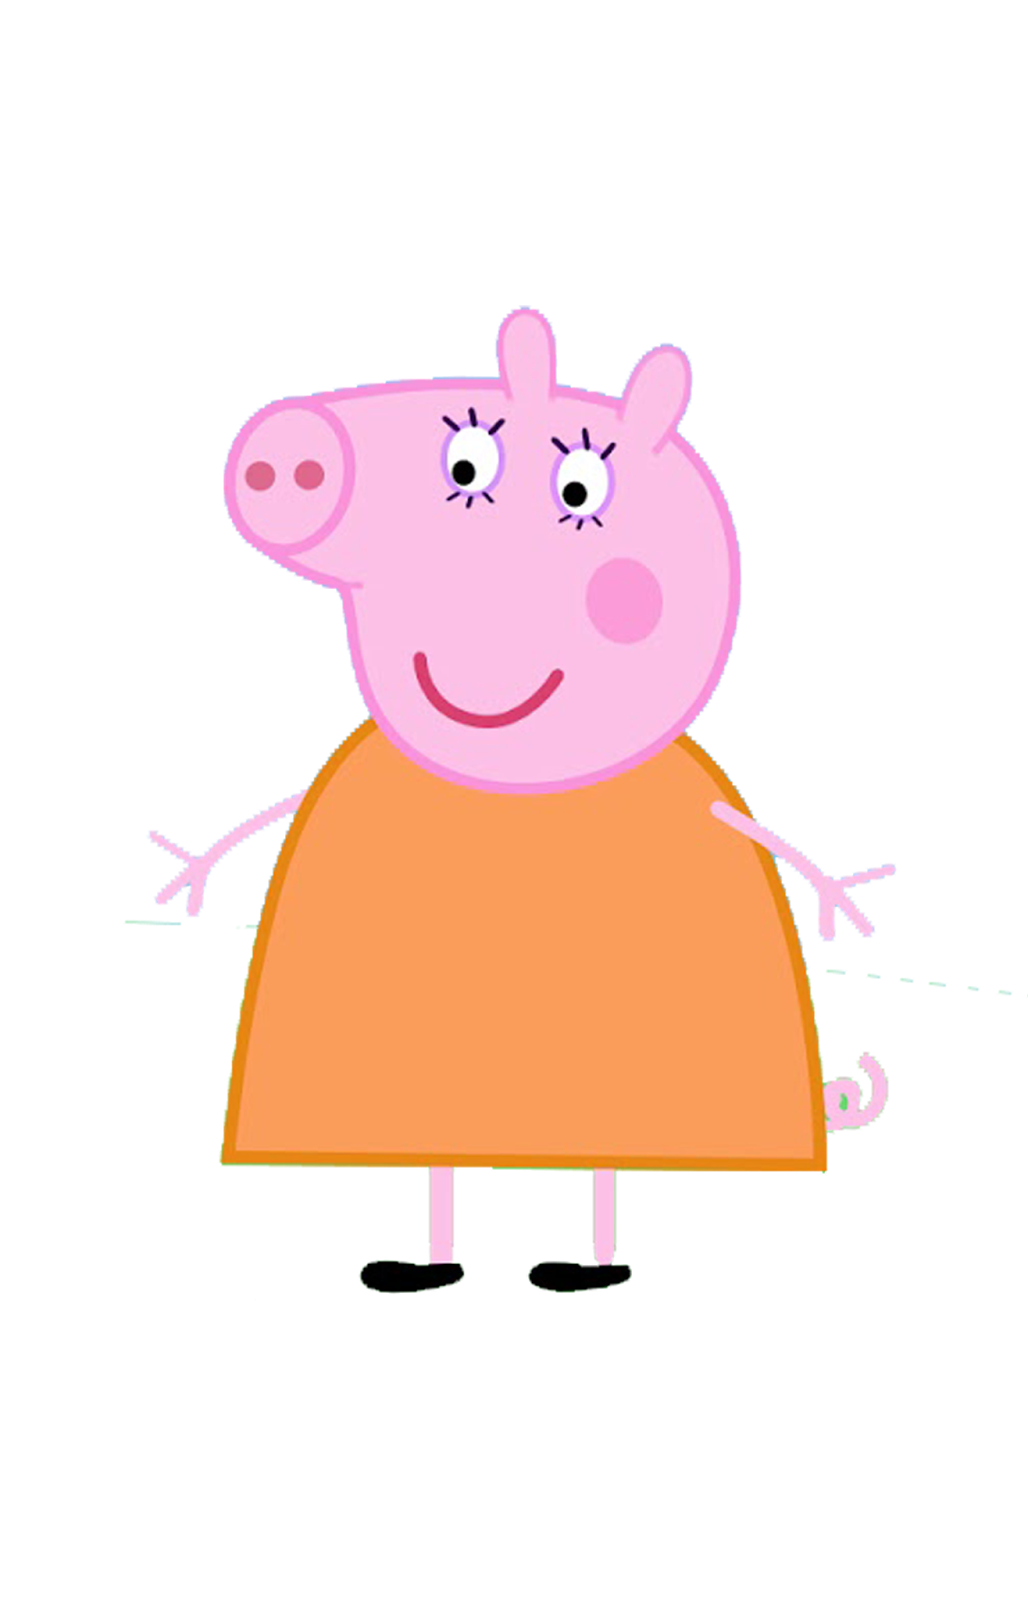 Advertisements. Copy of PP-2. Peppa-Pig-Banner